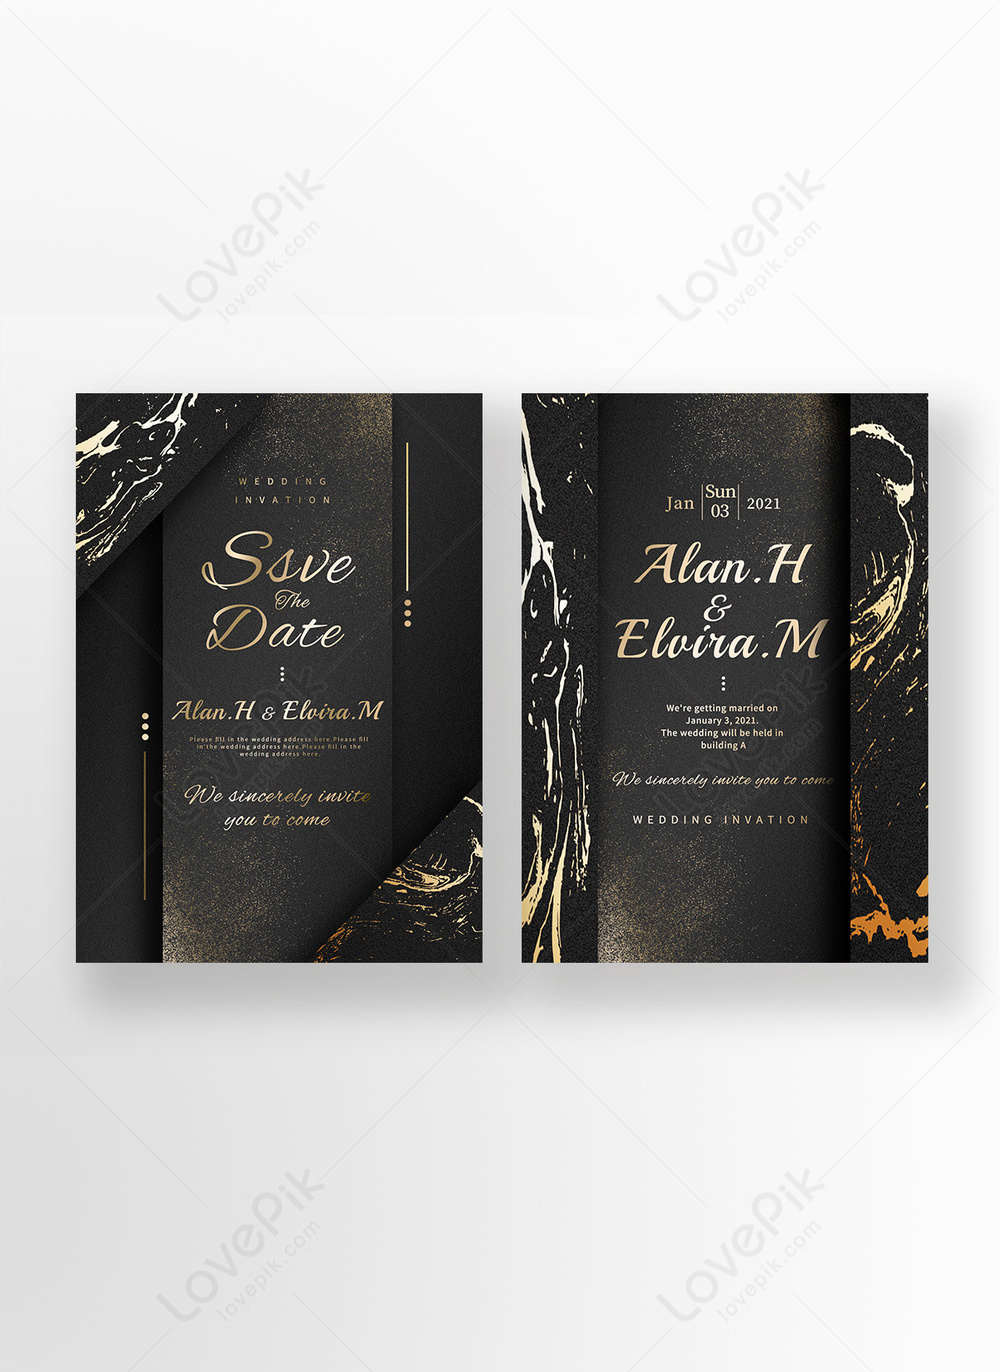 Luxury Black Gold Pink Marble Texture Luxury Bronzing Layered Wedding Invitation Template Image Picture Free Download 465338839 Lovepik Com